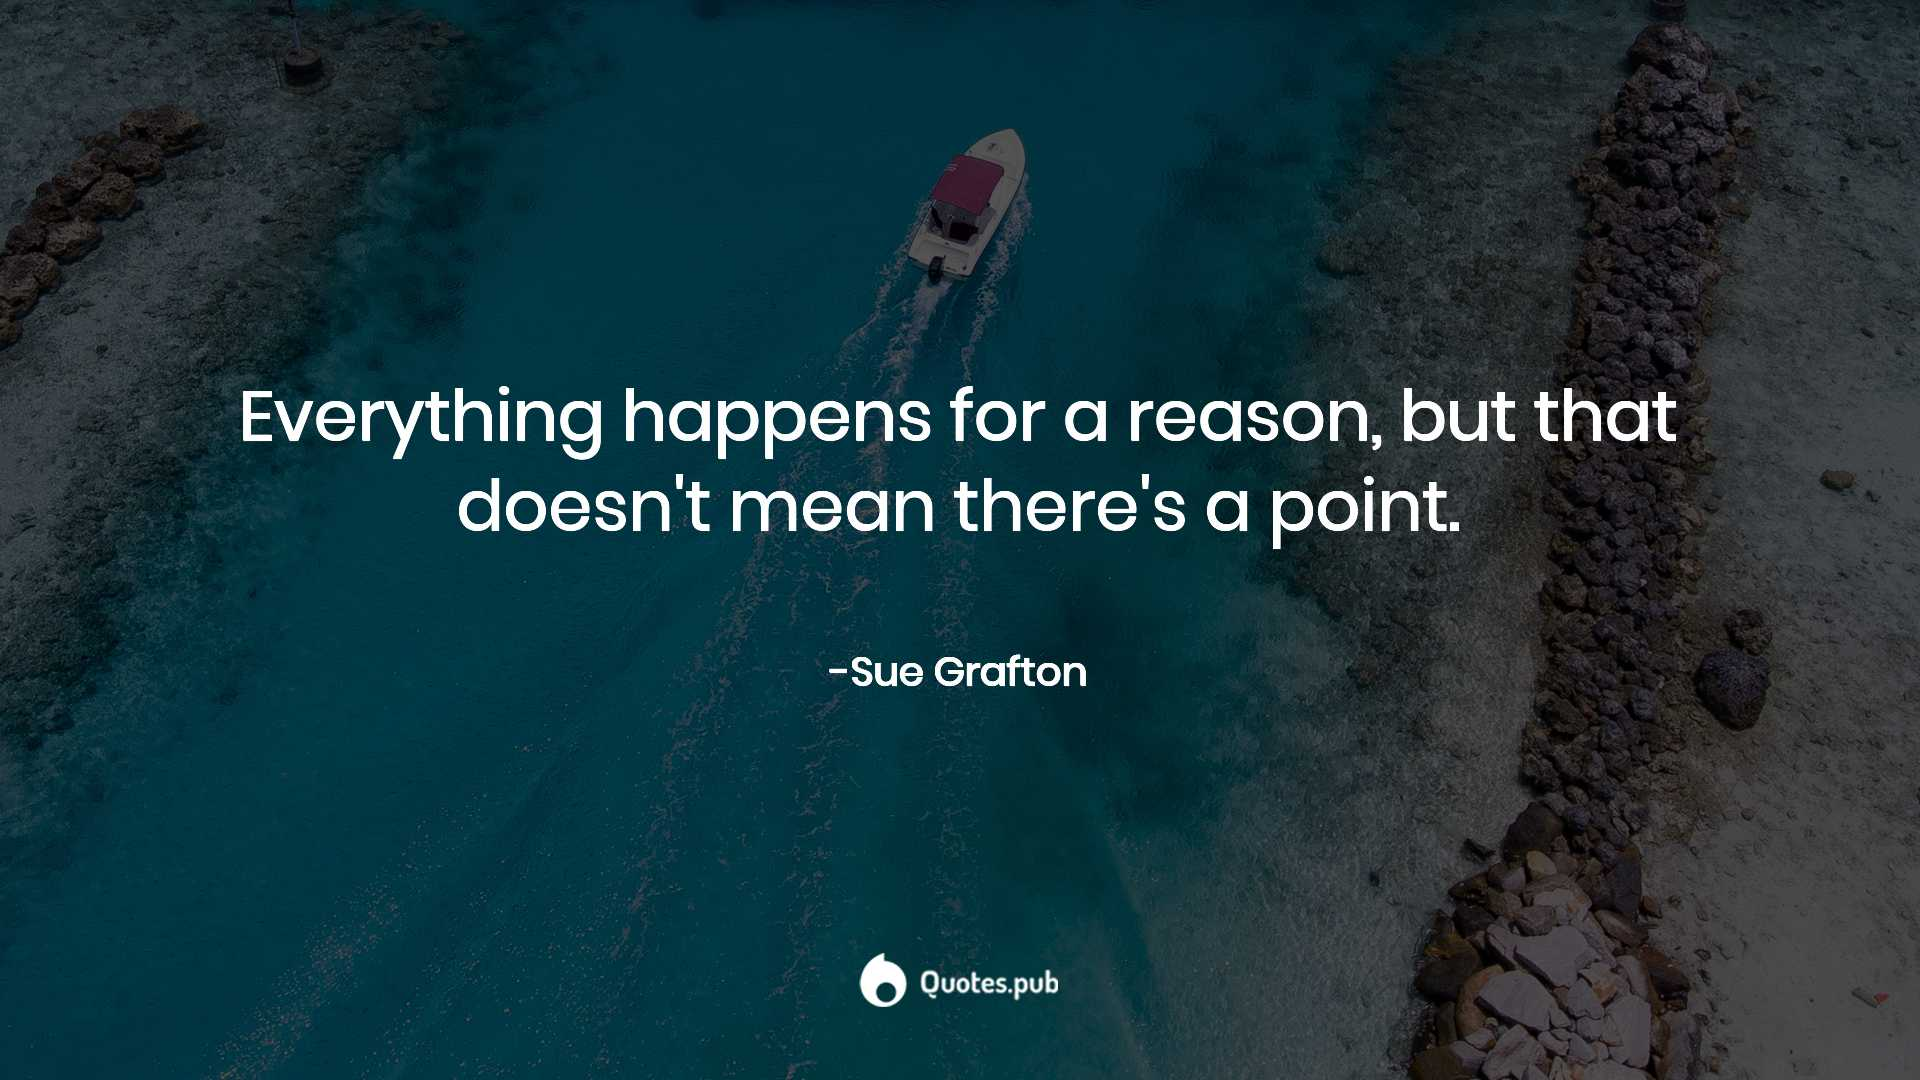 Everything Happens For A Reason But Tha Sue Grafton Quotes Pub